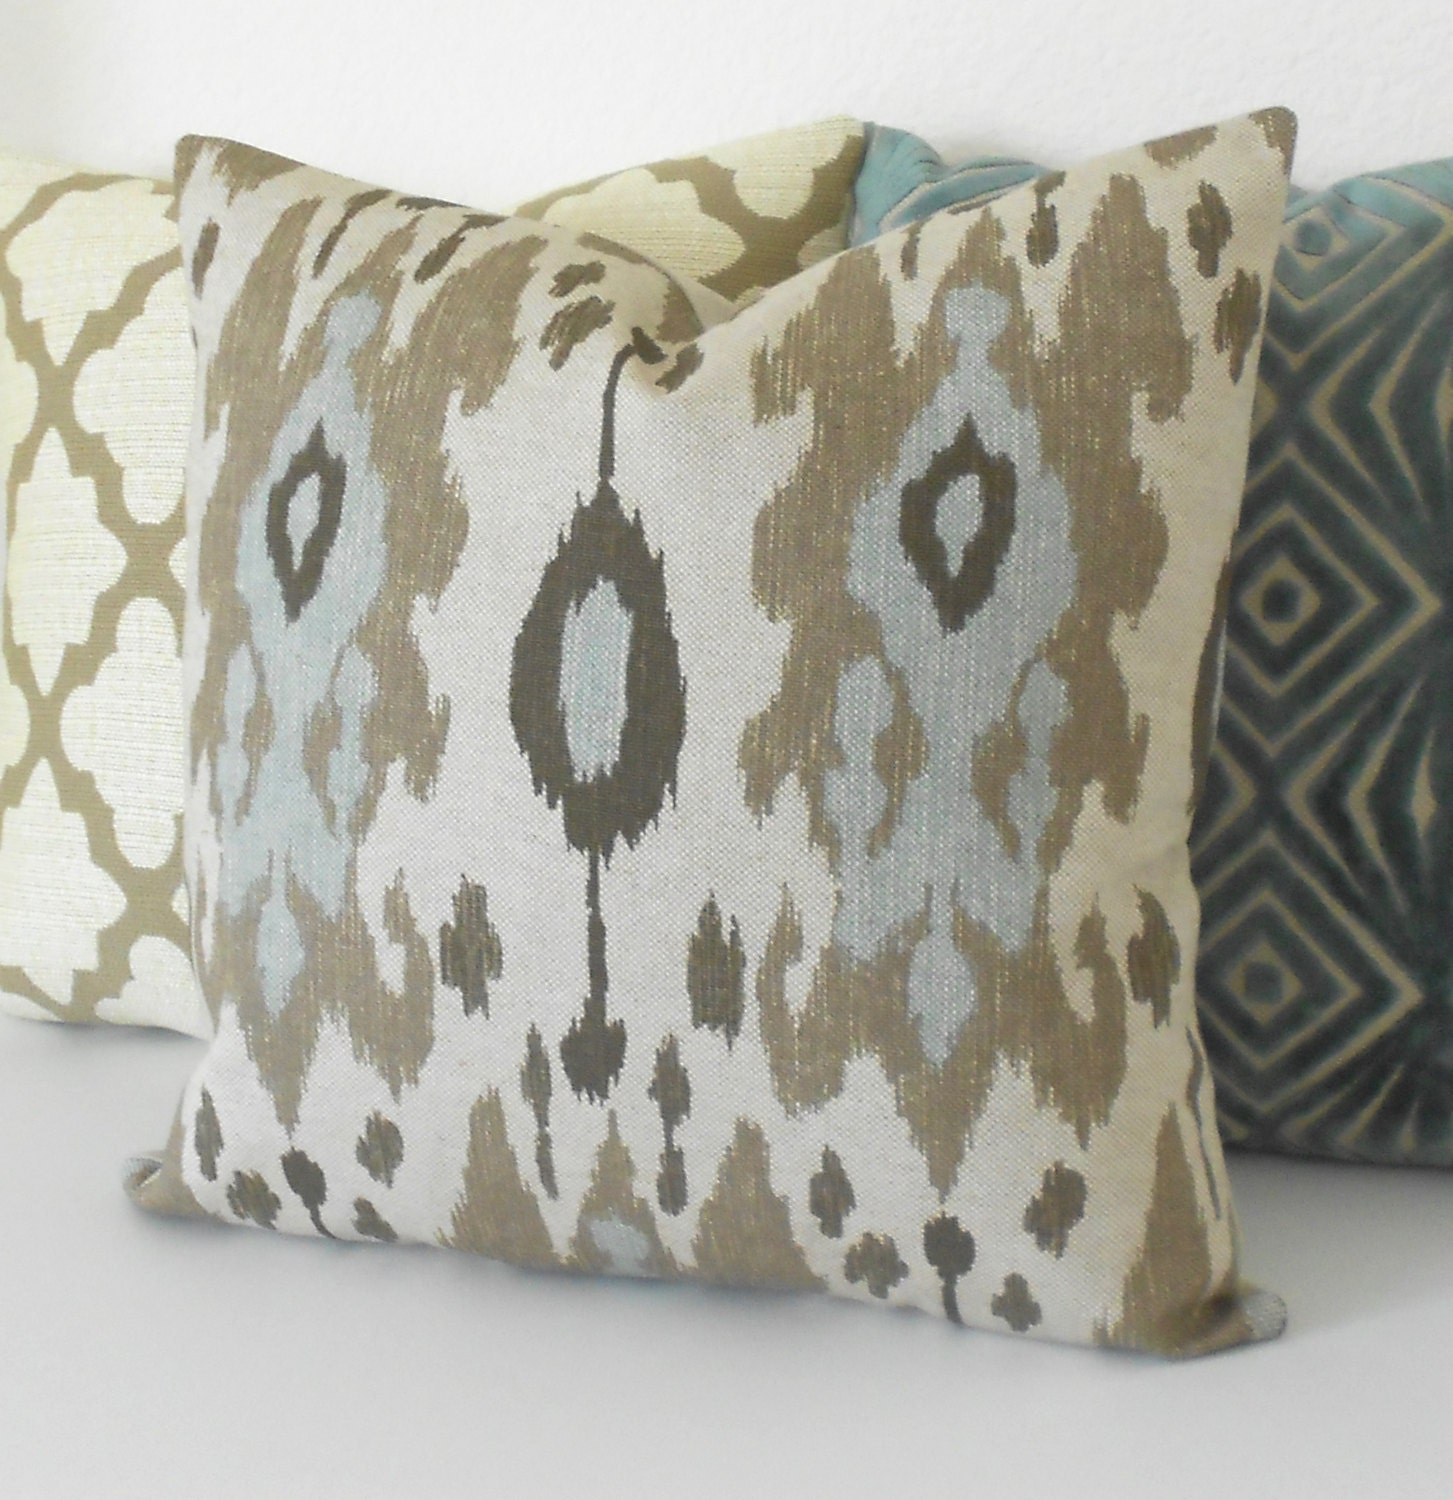 Light Blue And Brown Decorative Pillows : Ikat decorative pillow cover light blue brown and grey